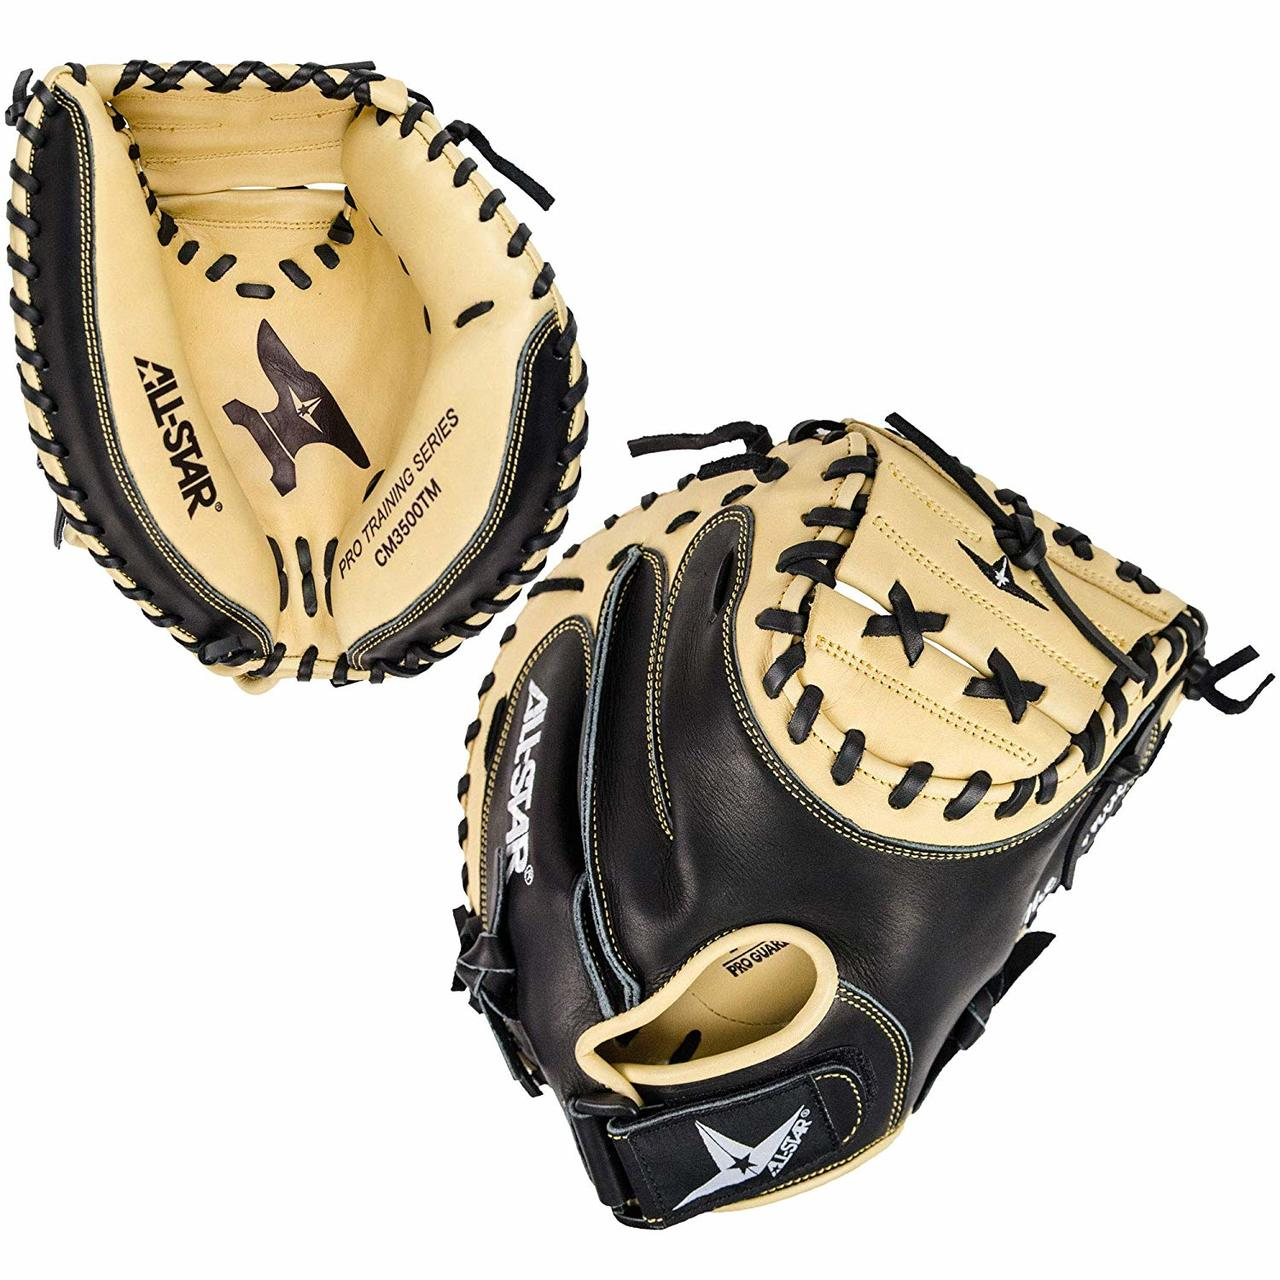 all-star-anvil-cm3500tm-adult-baseball-weighted-training-catchers-mitt-right-hand-throw CM3500TM-RightHandThrow All-Star 029343050930 33.5 Inch Catchers Training Model Closed web Designed for training purposes